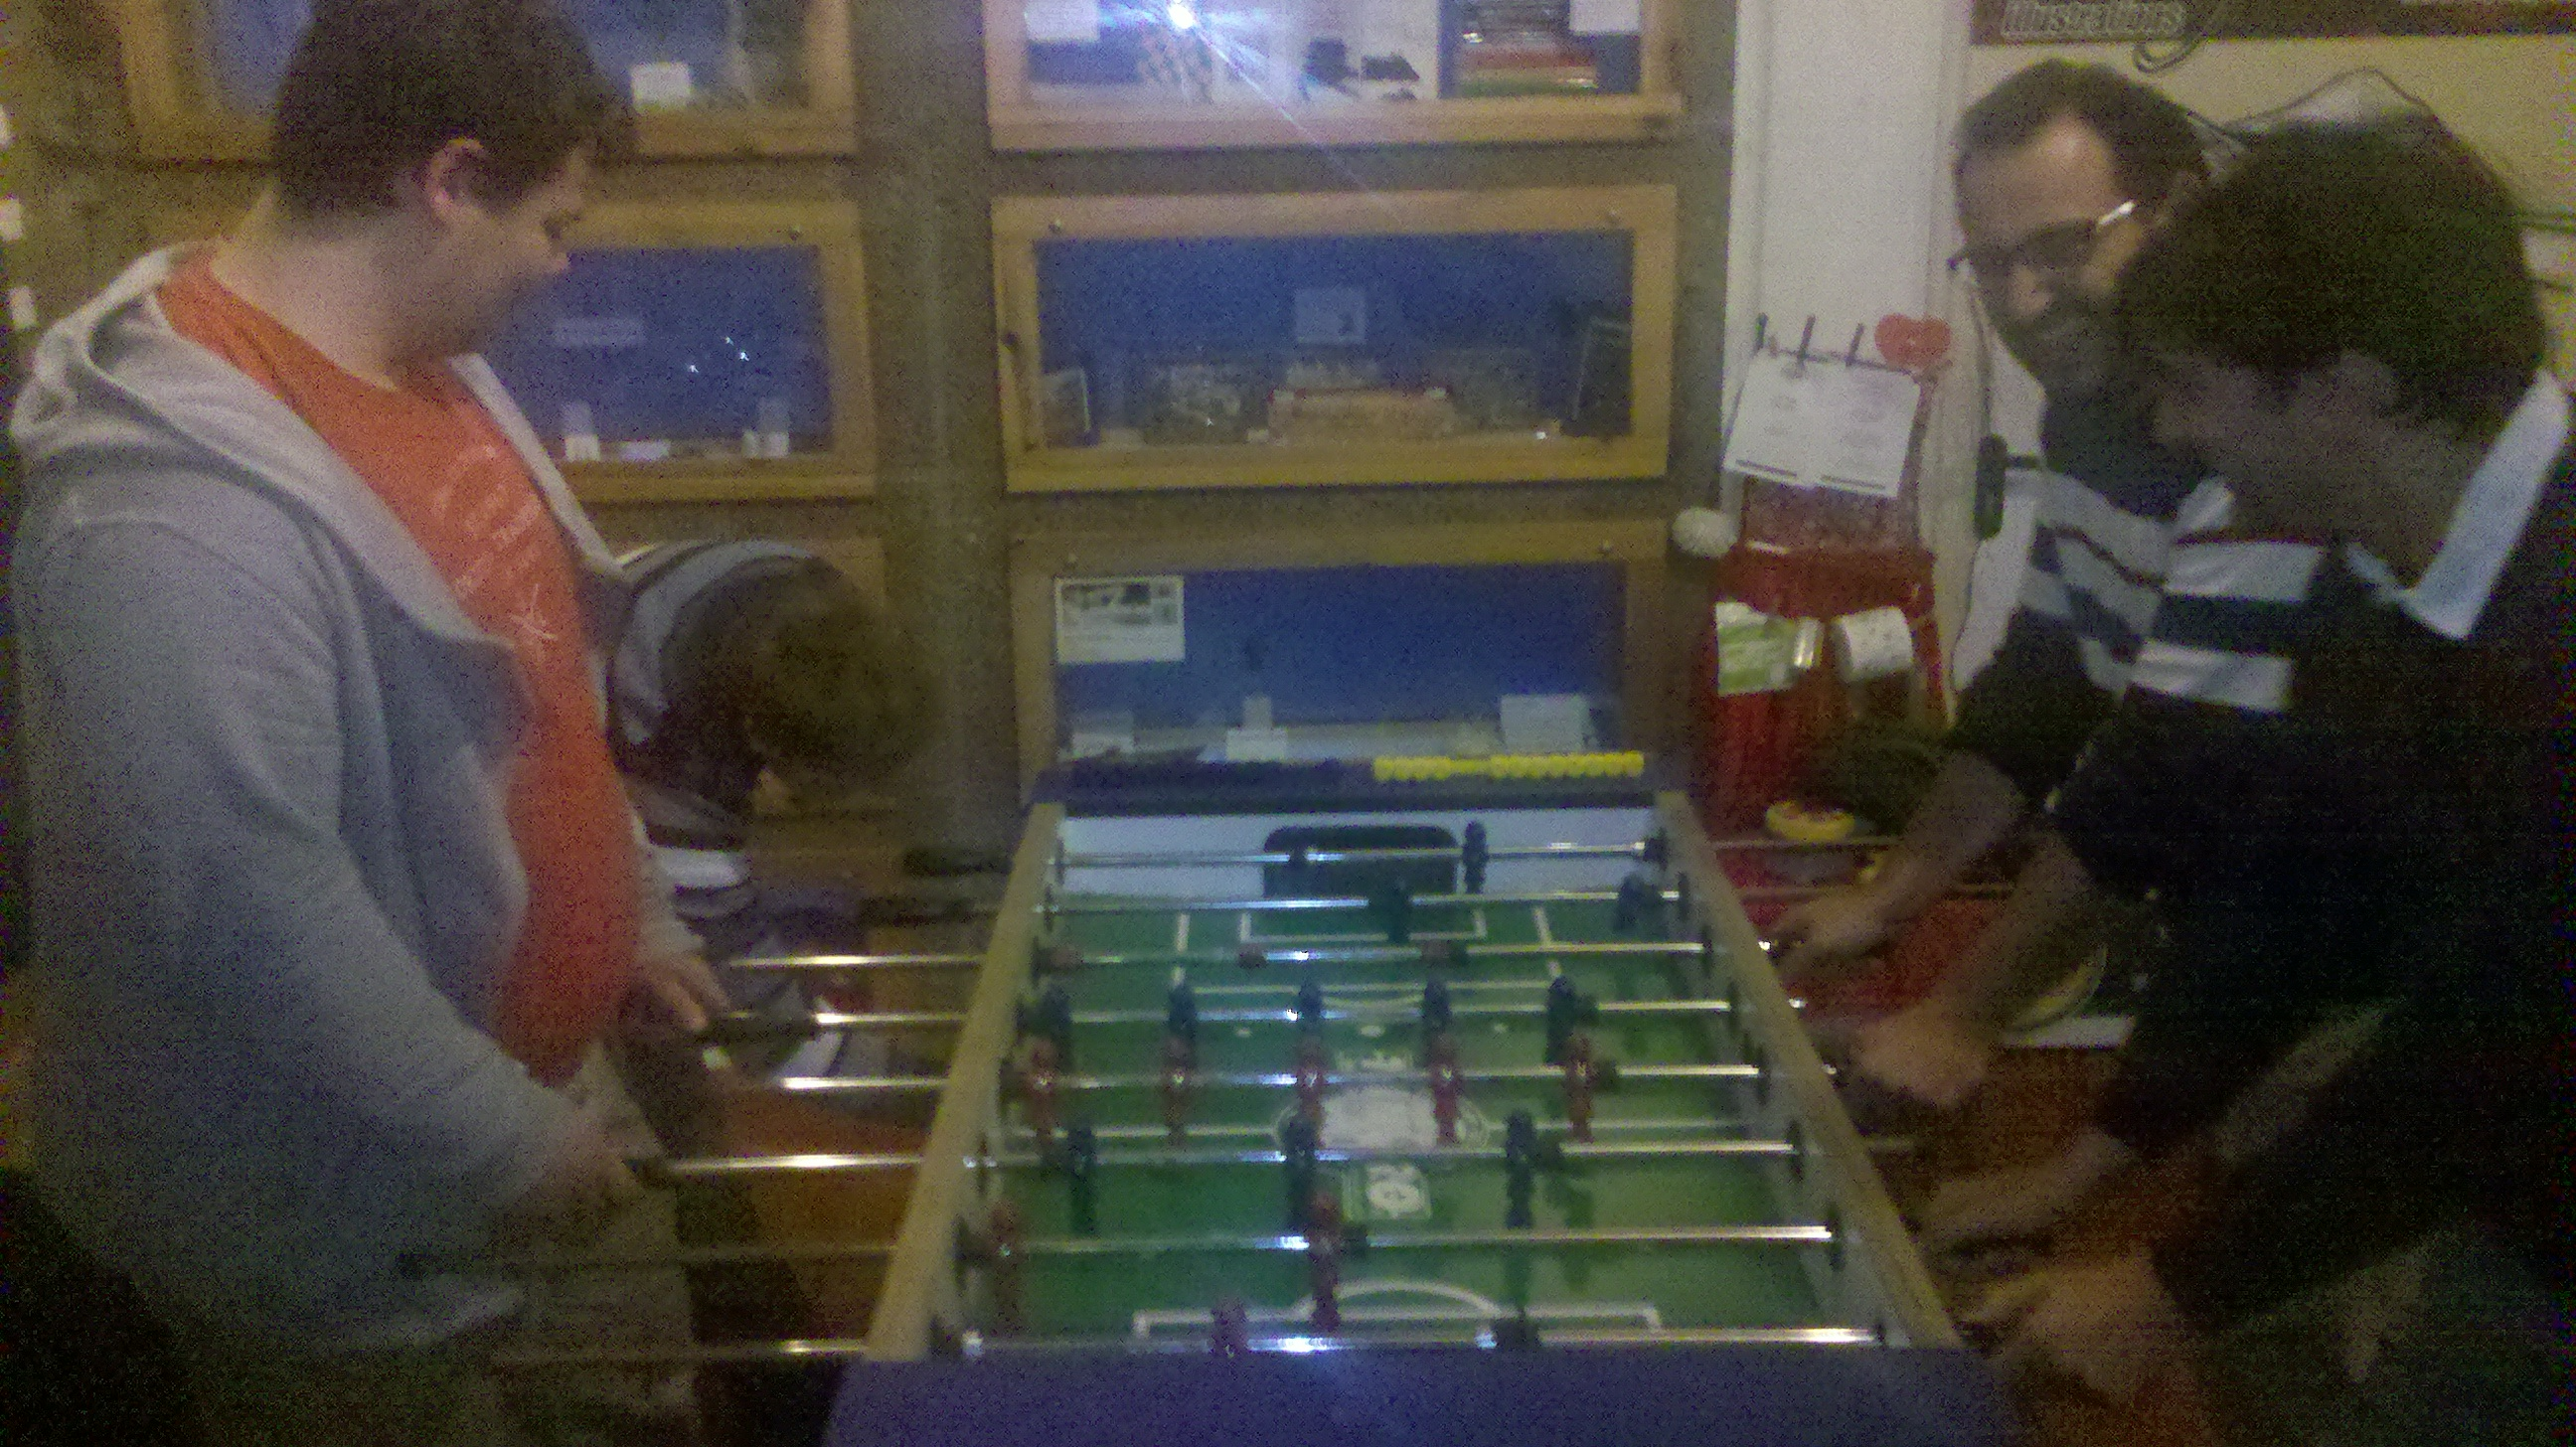 Saturday evening @ Unperfekthaus: Denmark (fleten.net) vs. Spain (Qindel Group) table football match